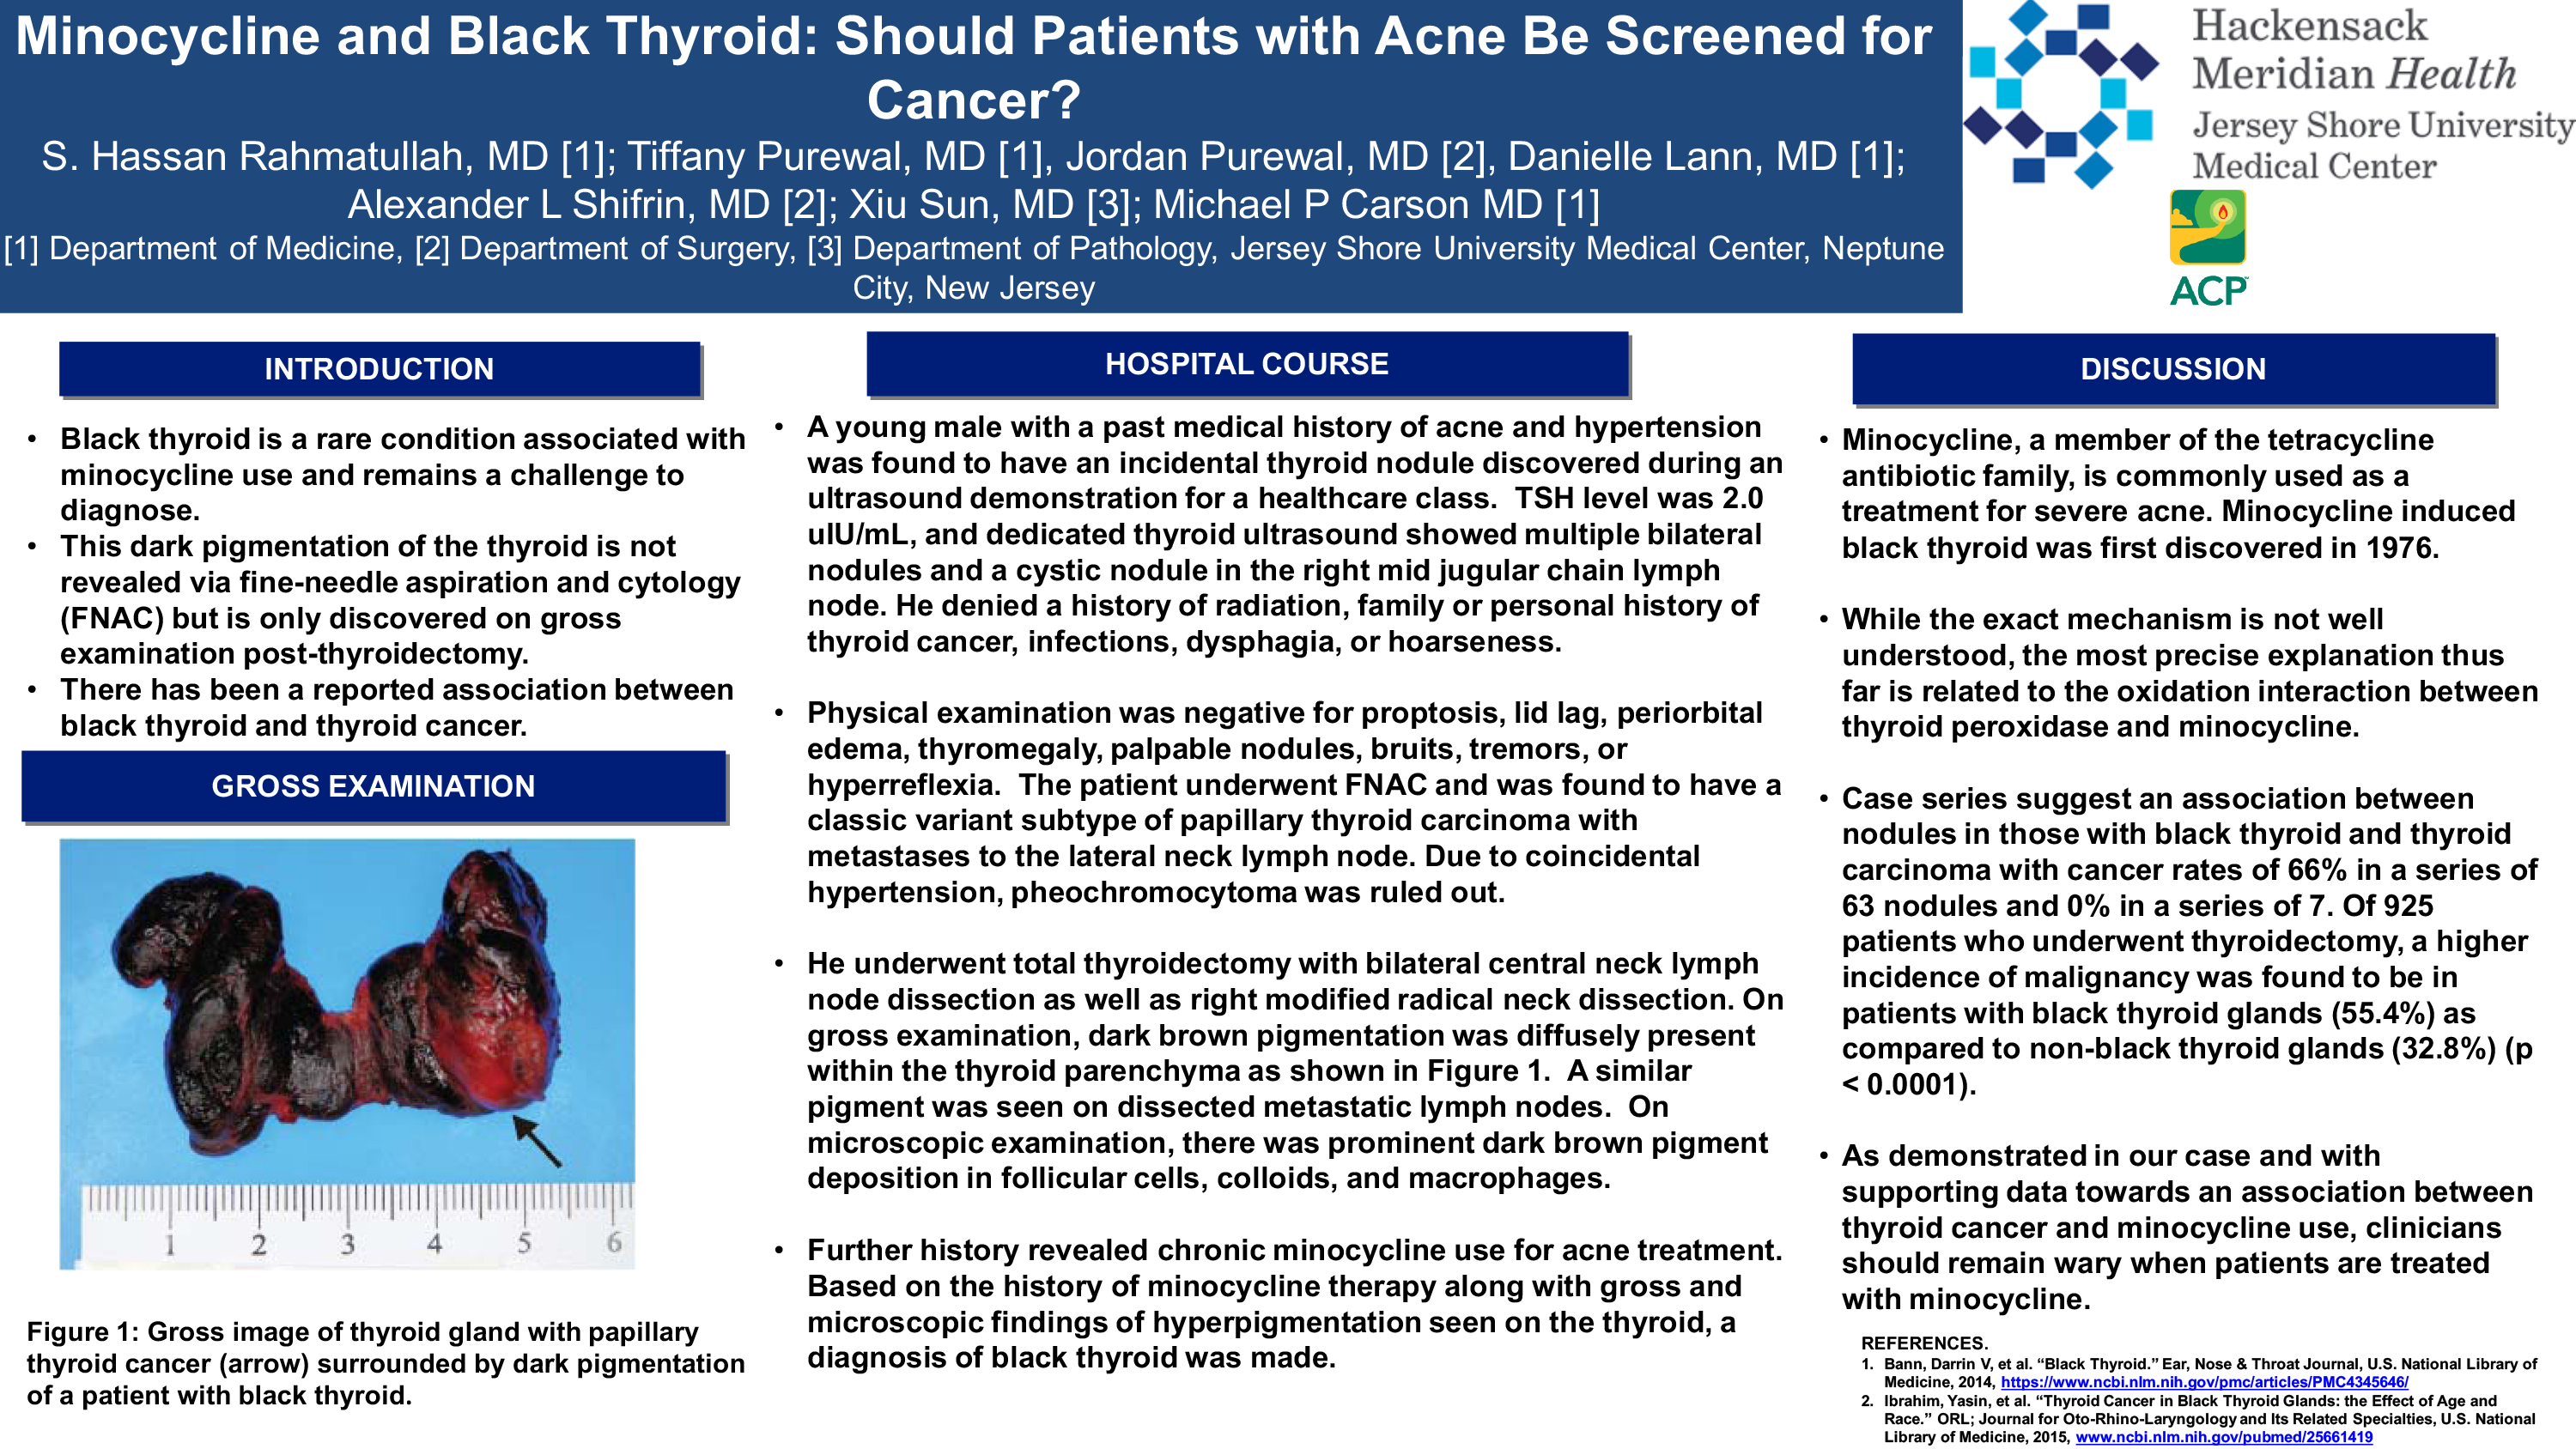 19-CV-40-Minocycline and Black Thyroid Should Patients with Acne be Screened for Cancer